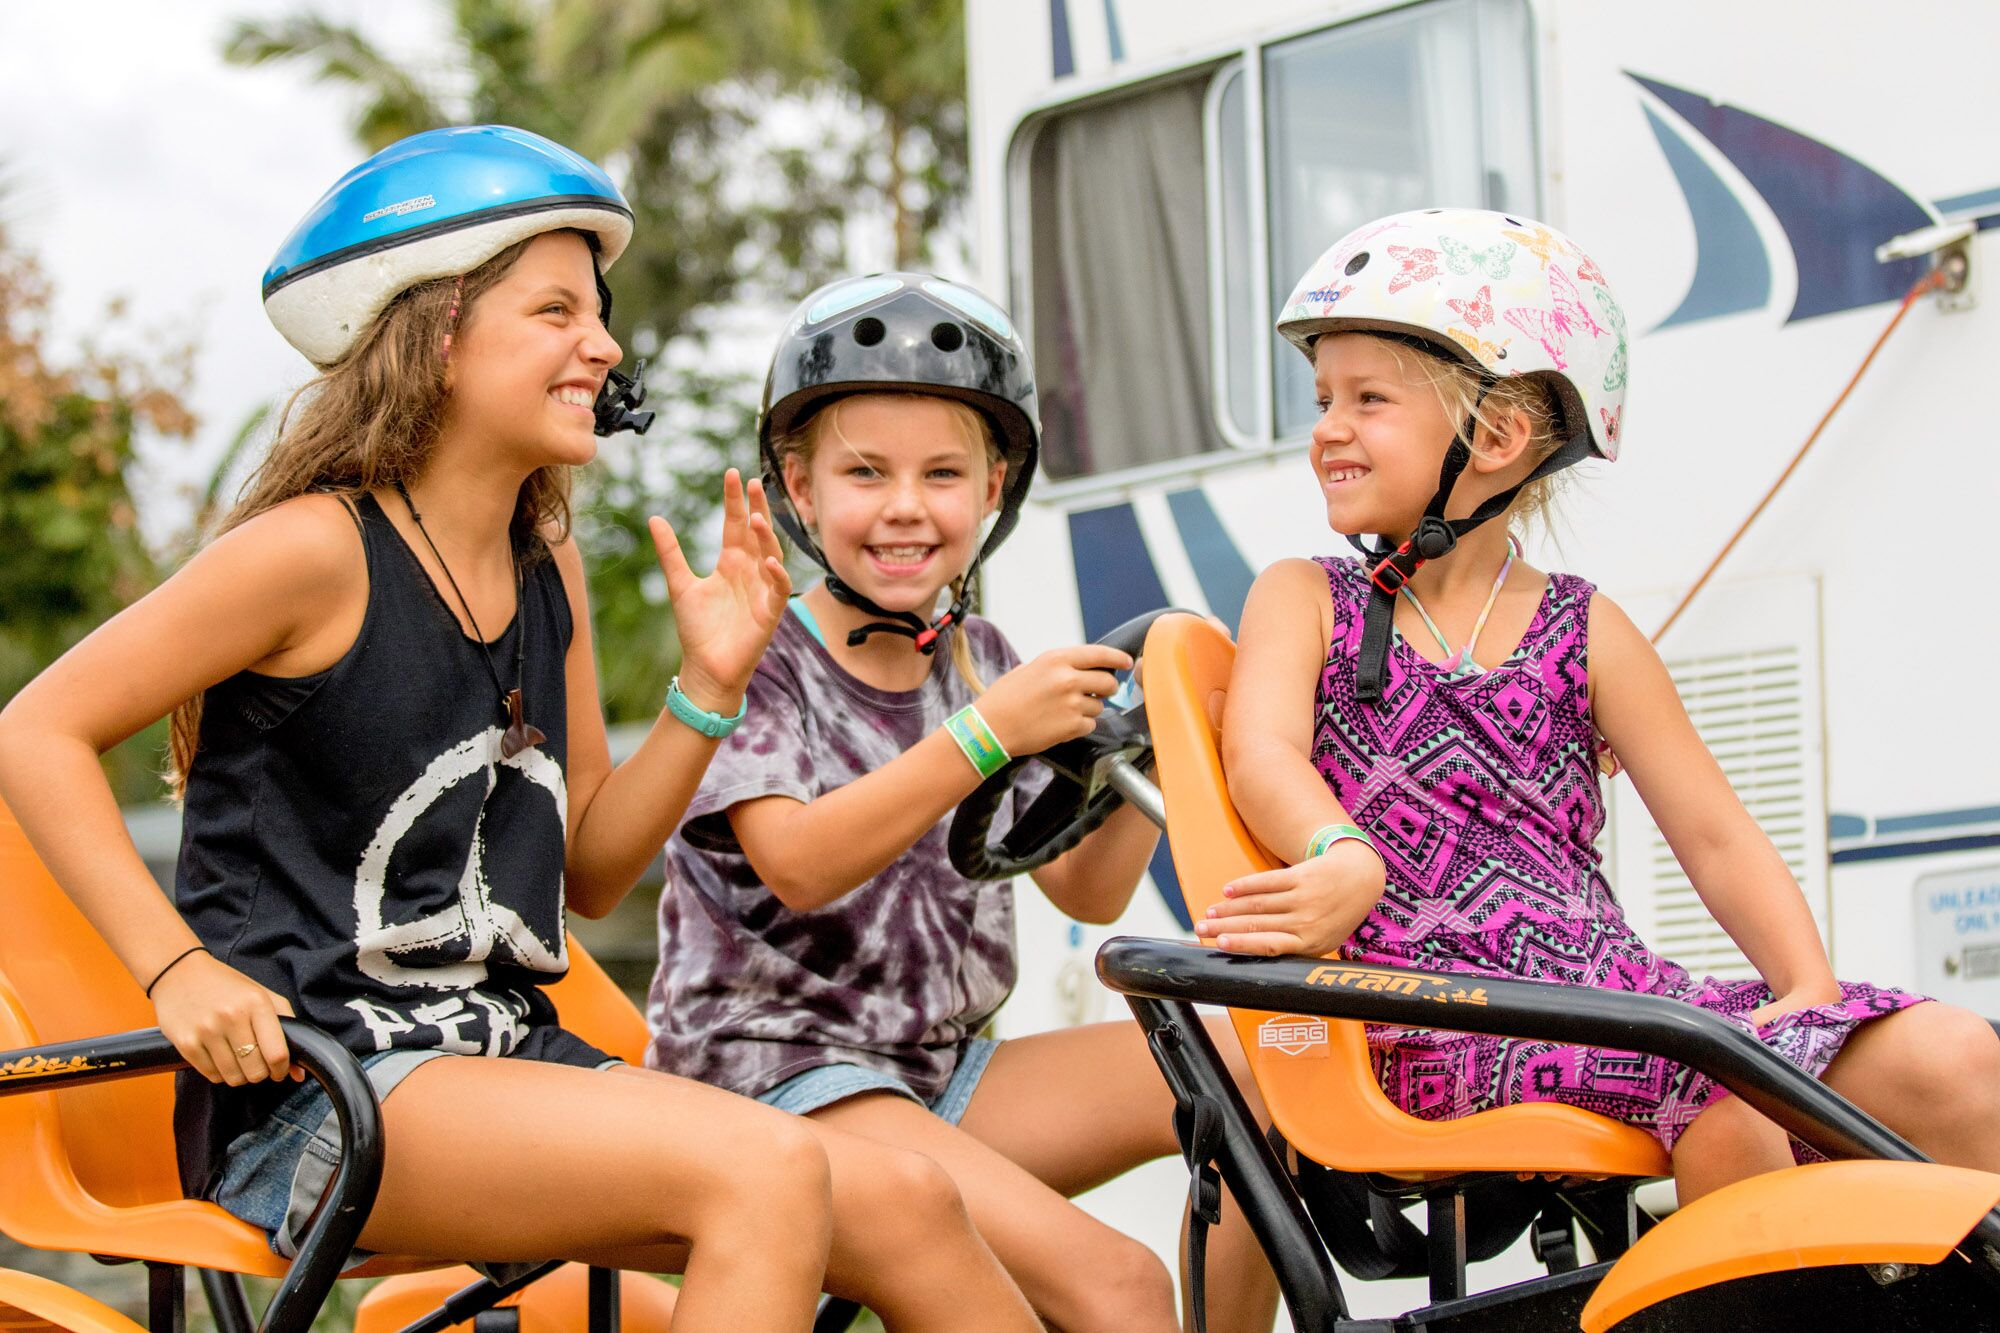 The Gold Coast Holiday Park fun for the kids - Pedal Bikes and BMX track